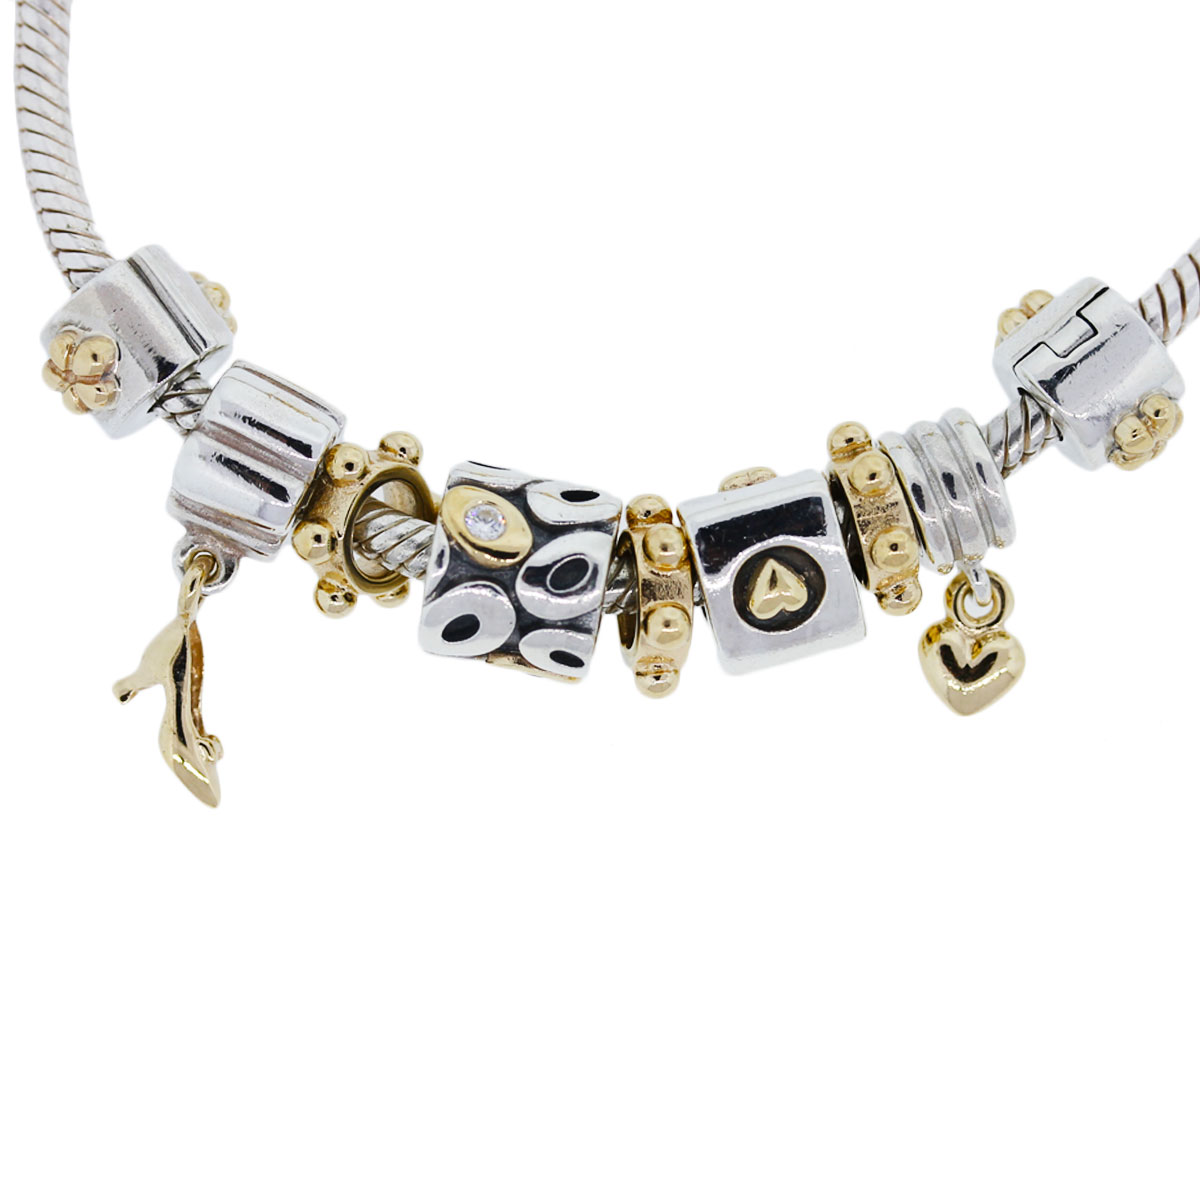 Gold Pandora Jewelry: Pandora 14k Yellow Gold And Sterling Silver Charm Bracelet